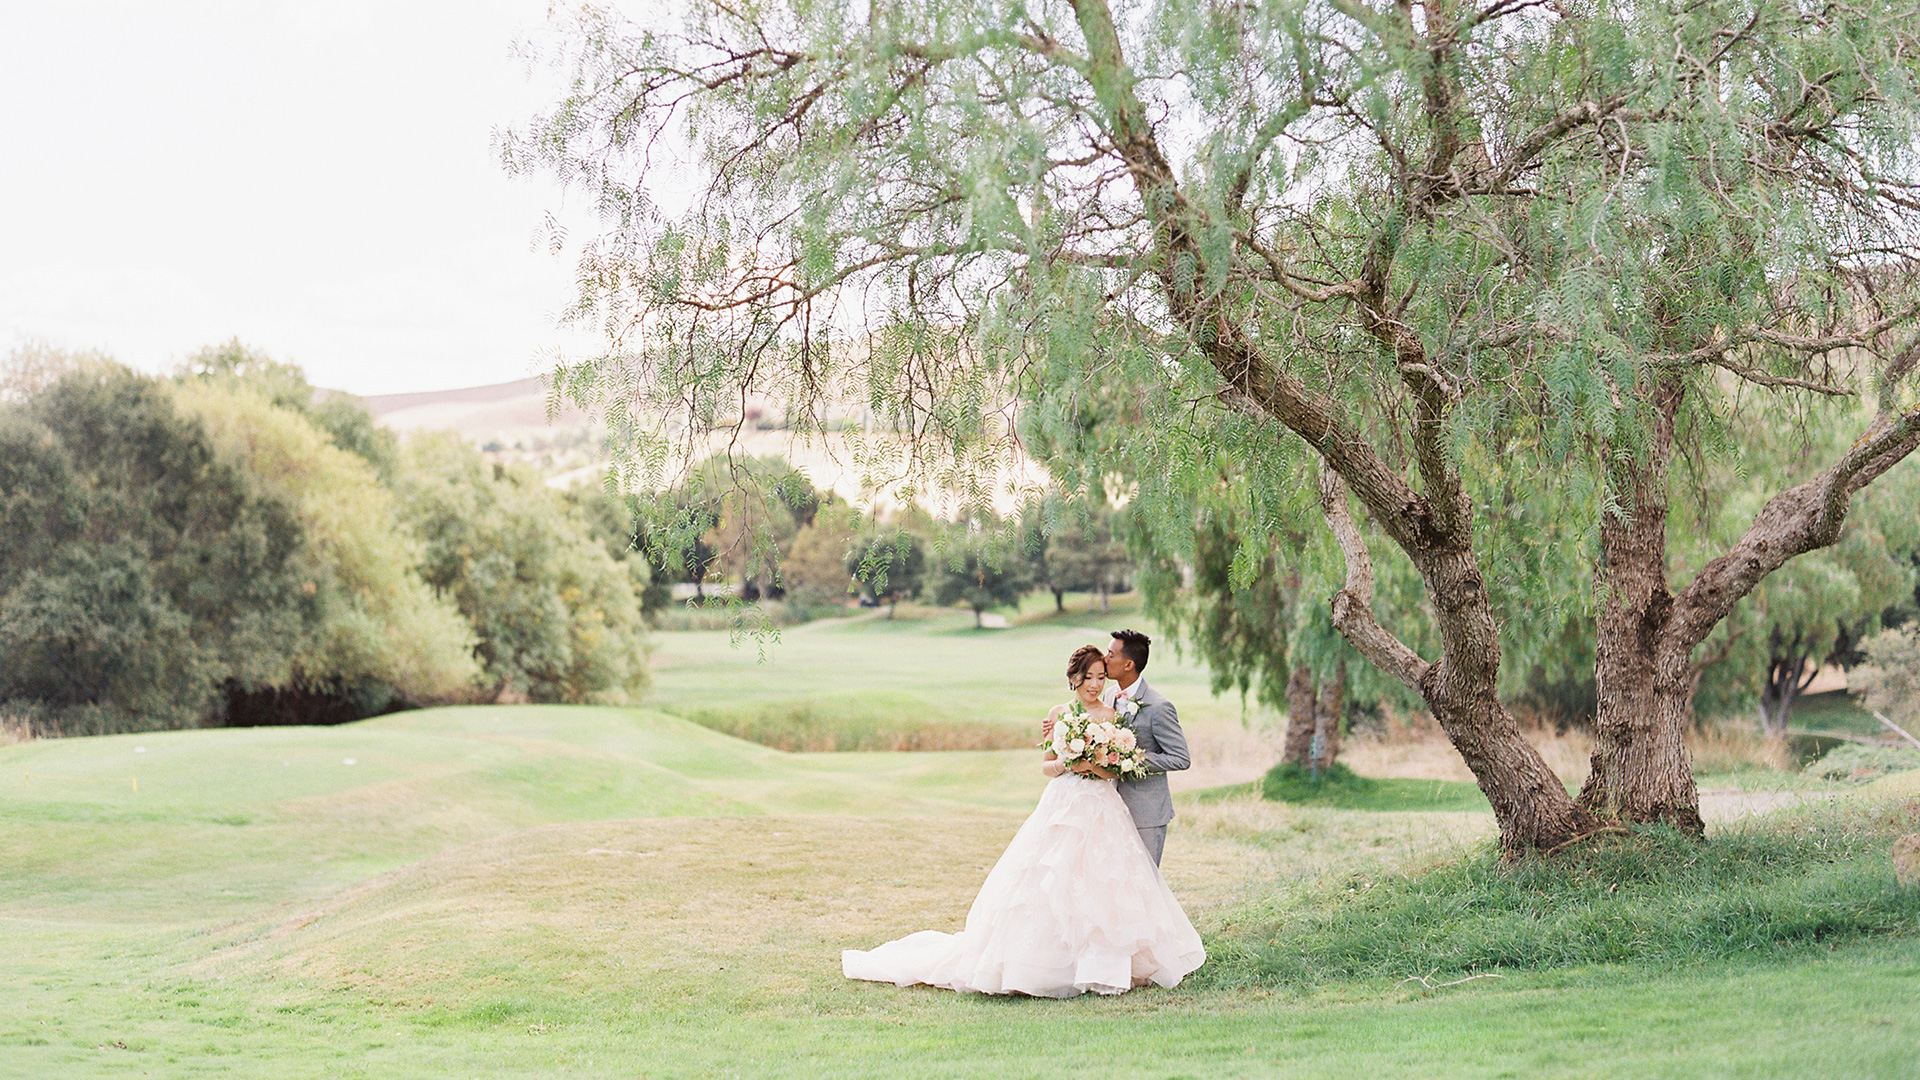 A couple share a beautiful moment under a tree at Hiddenbrooke Golf Club in Vallejo